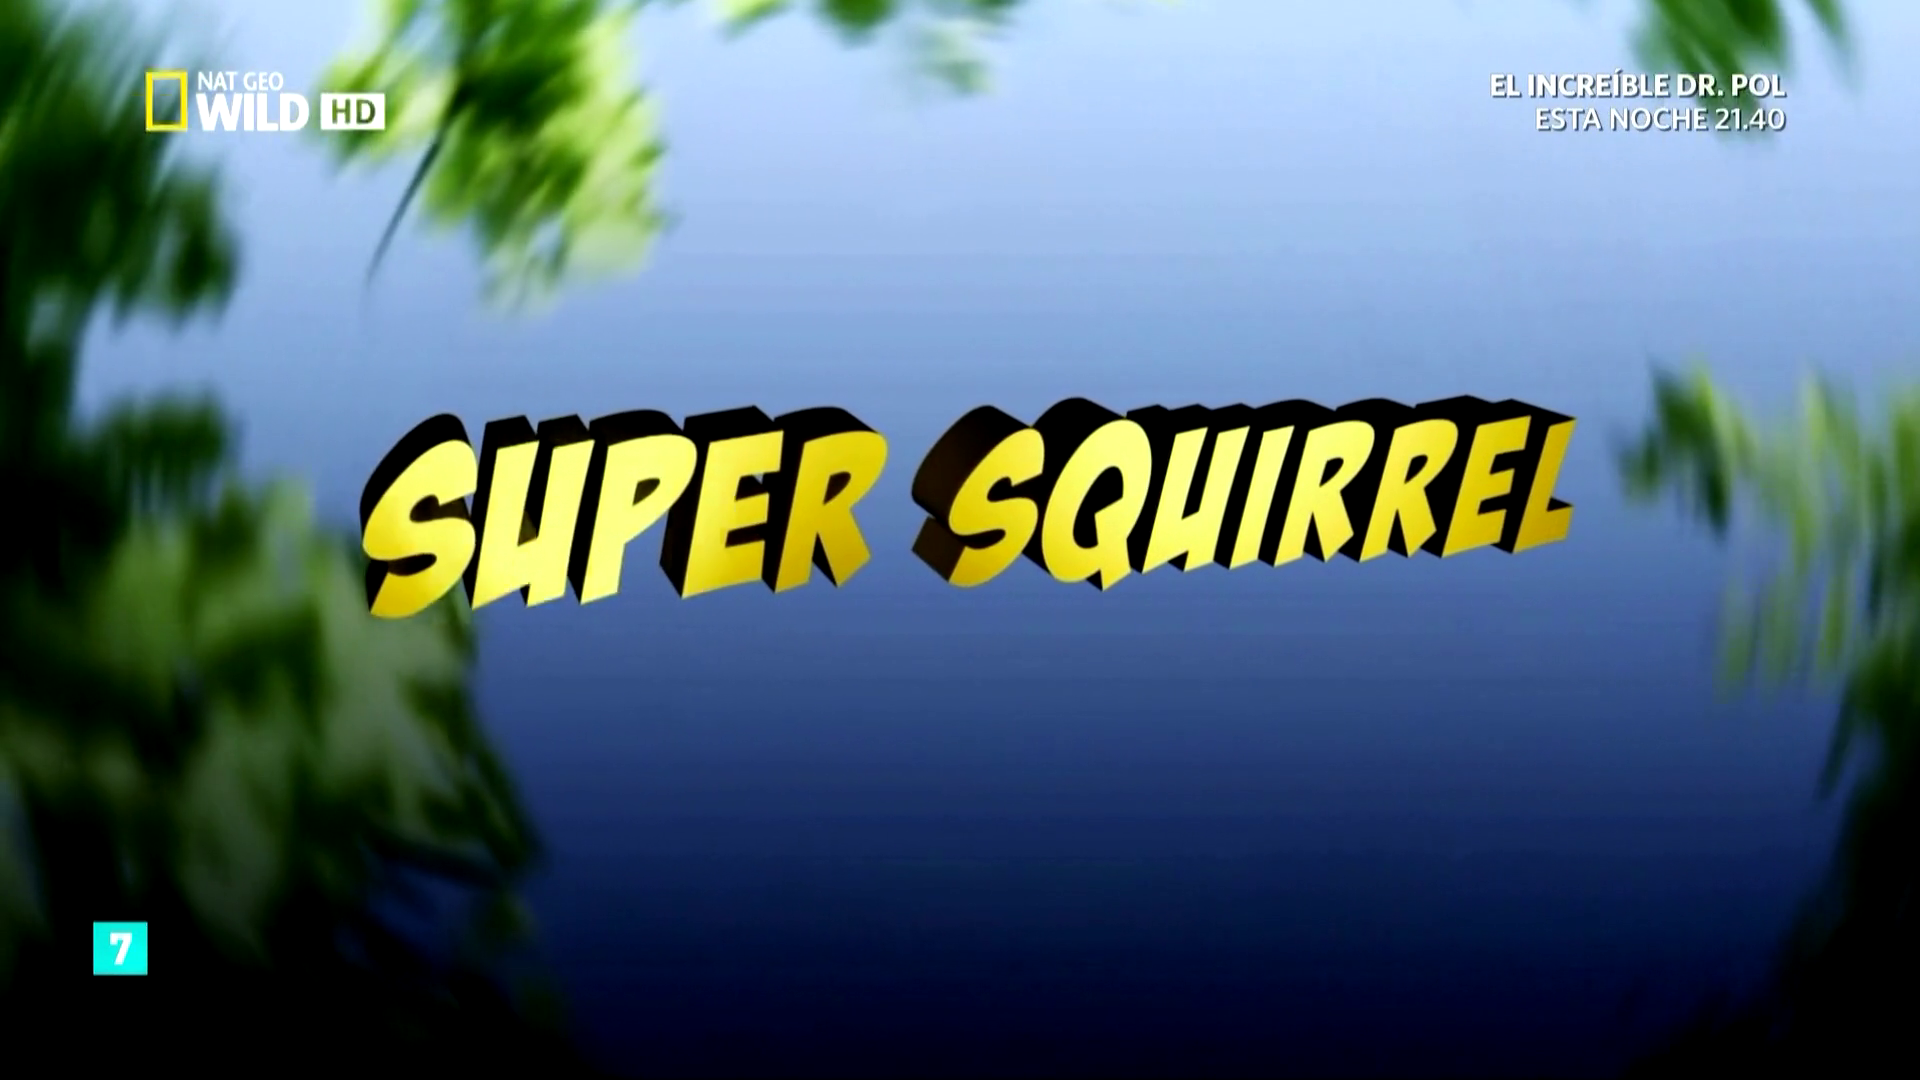 Super ardillas (2014)HDTVRip Español 1080p